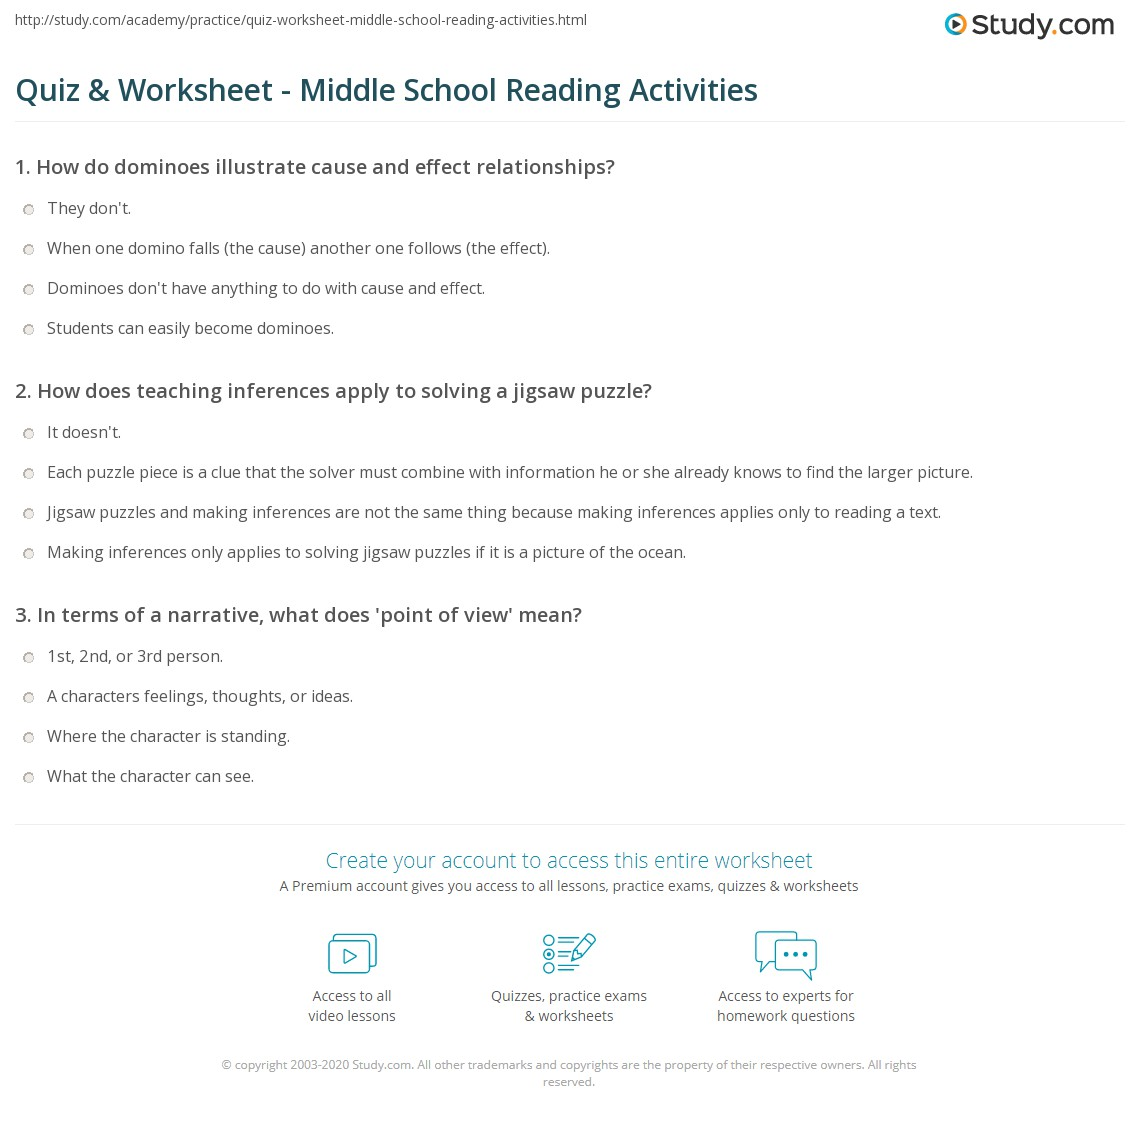 Quiz & Worksheet - Middle School Reading Activities | Study.com